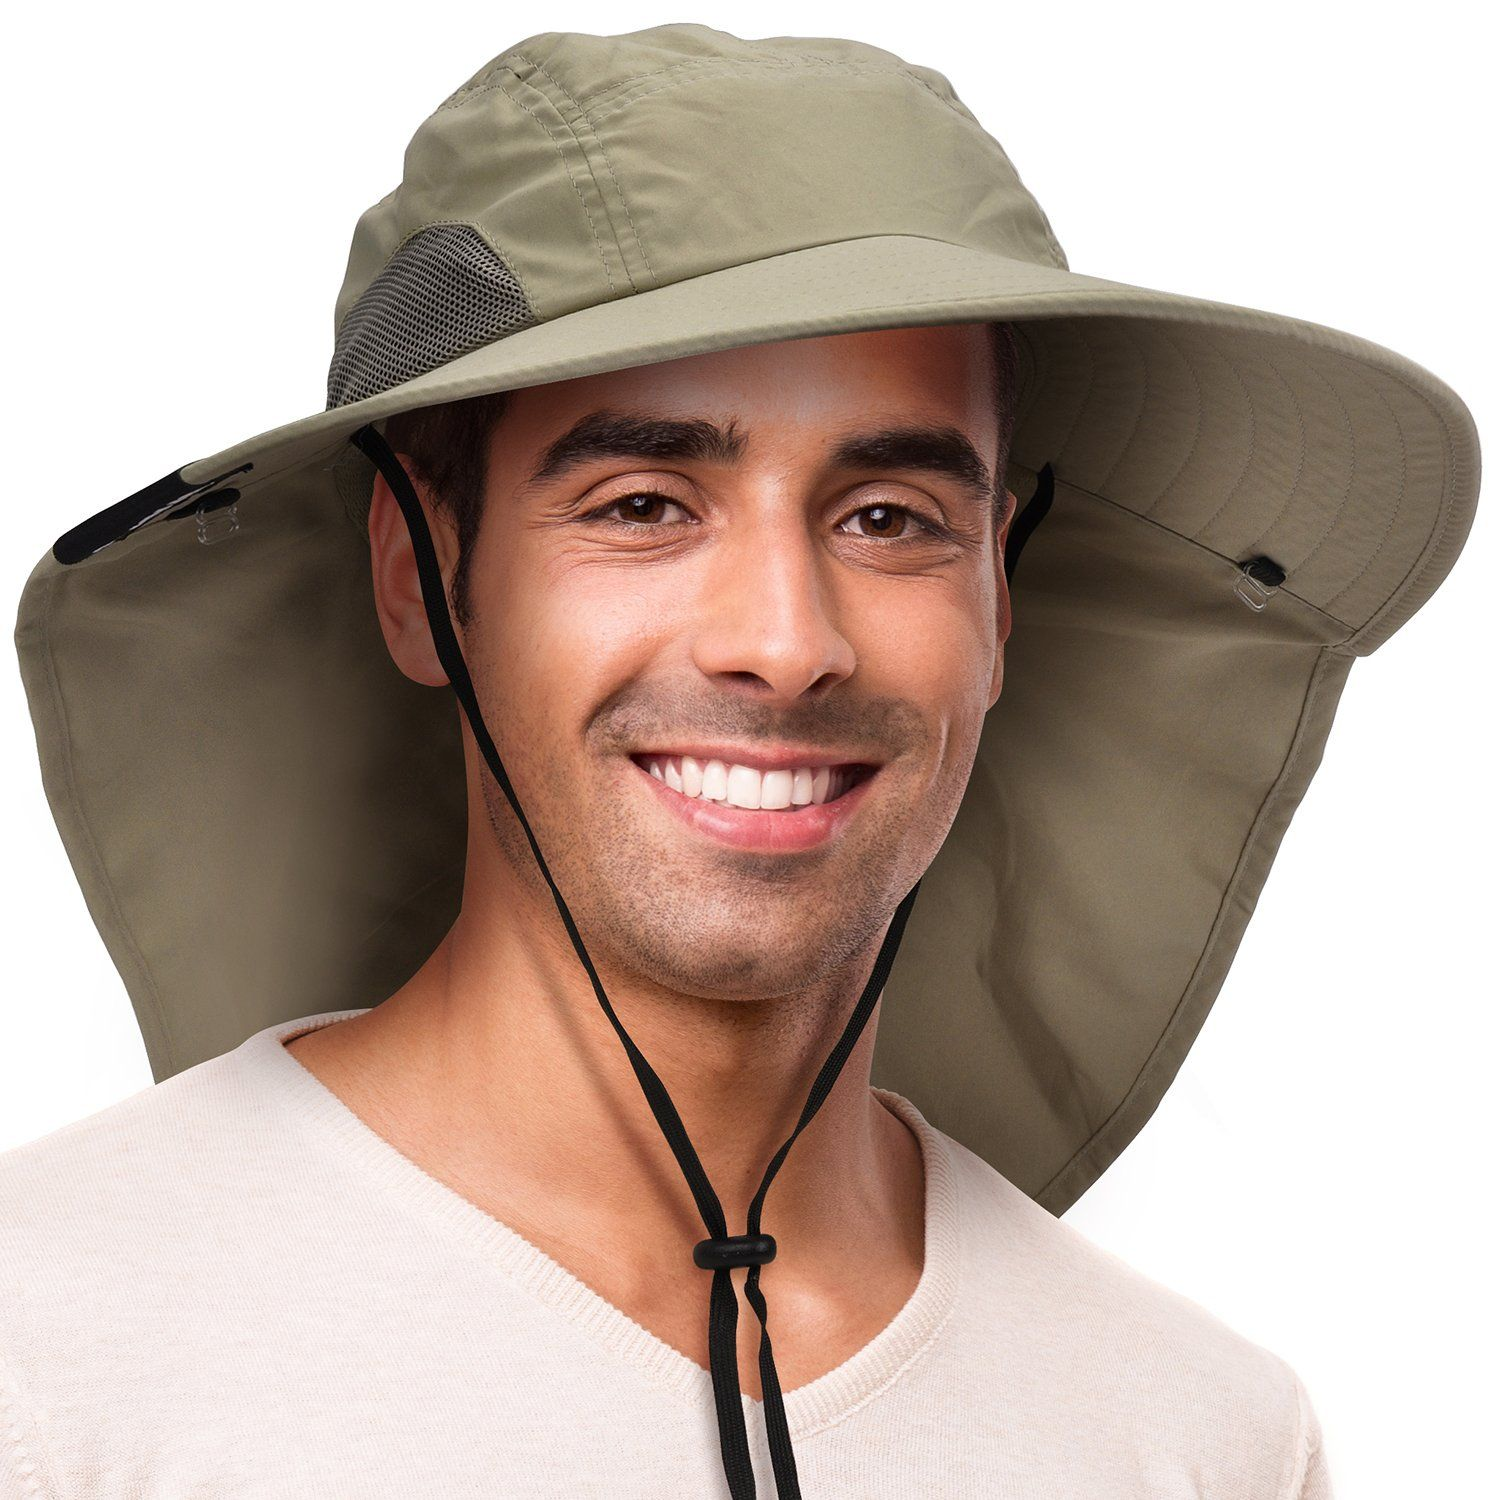 Outdoor Cap With Ear And Neck Flap Cover Sun Protection Hats Hiking Camping Gear